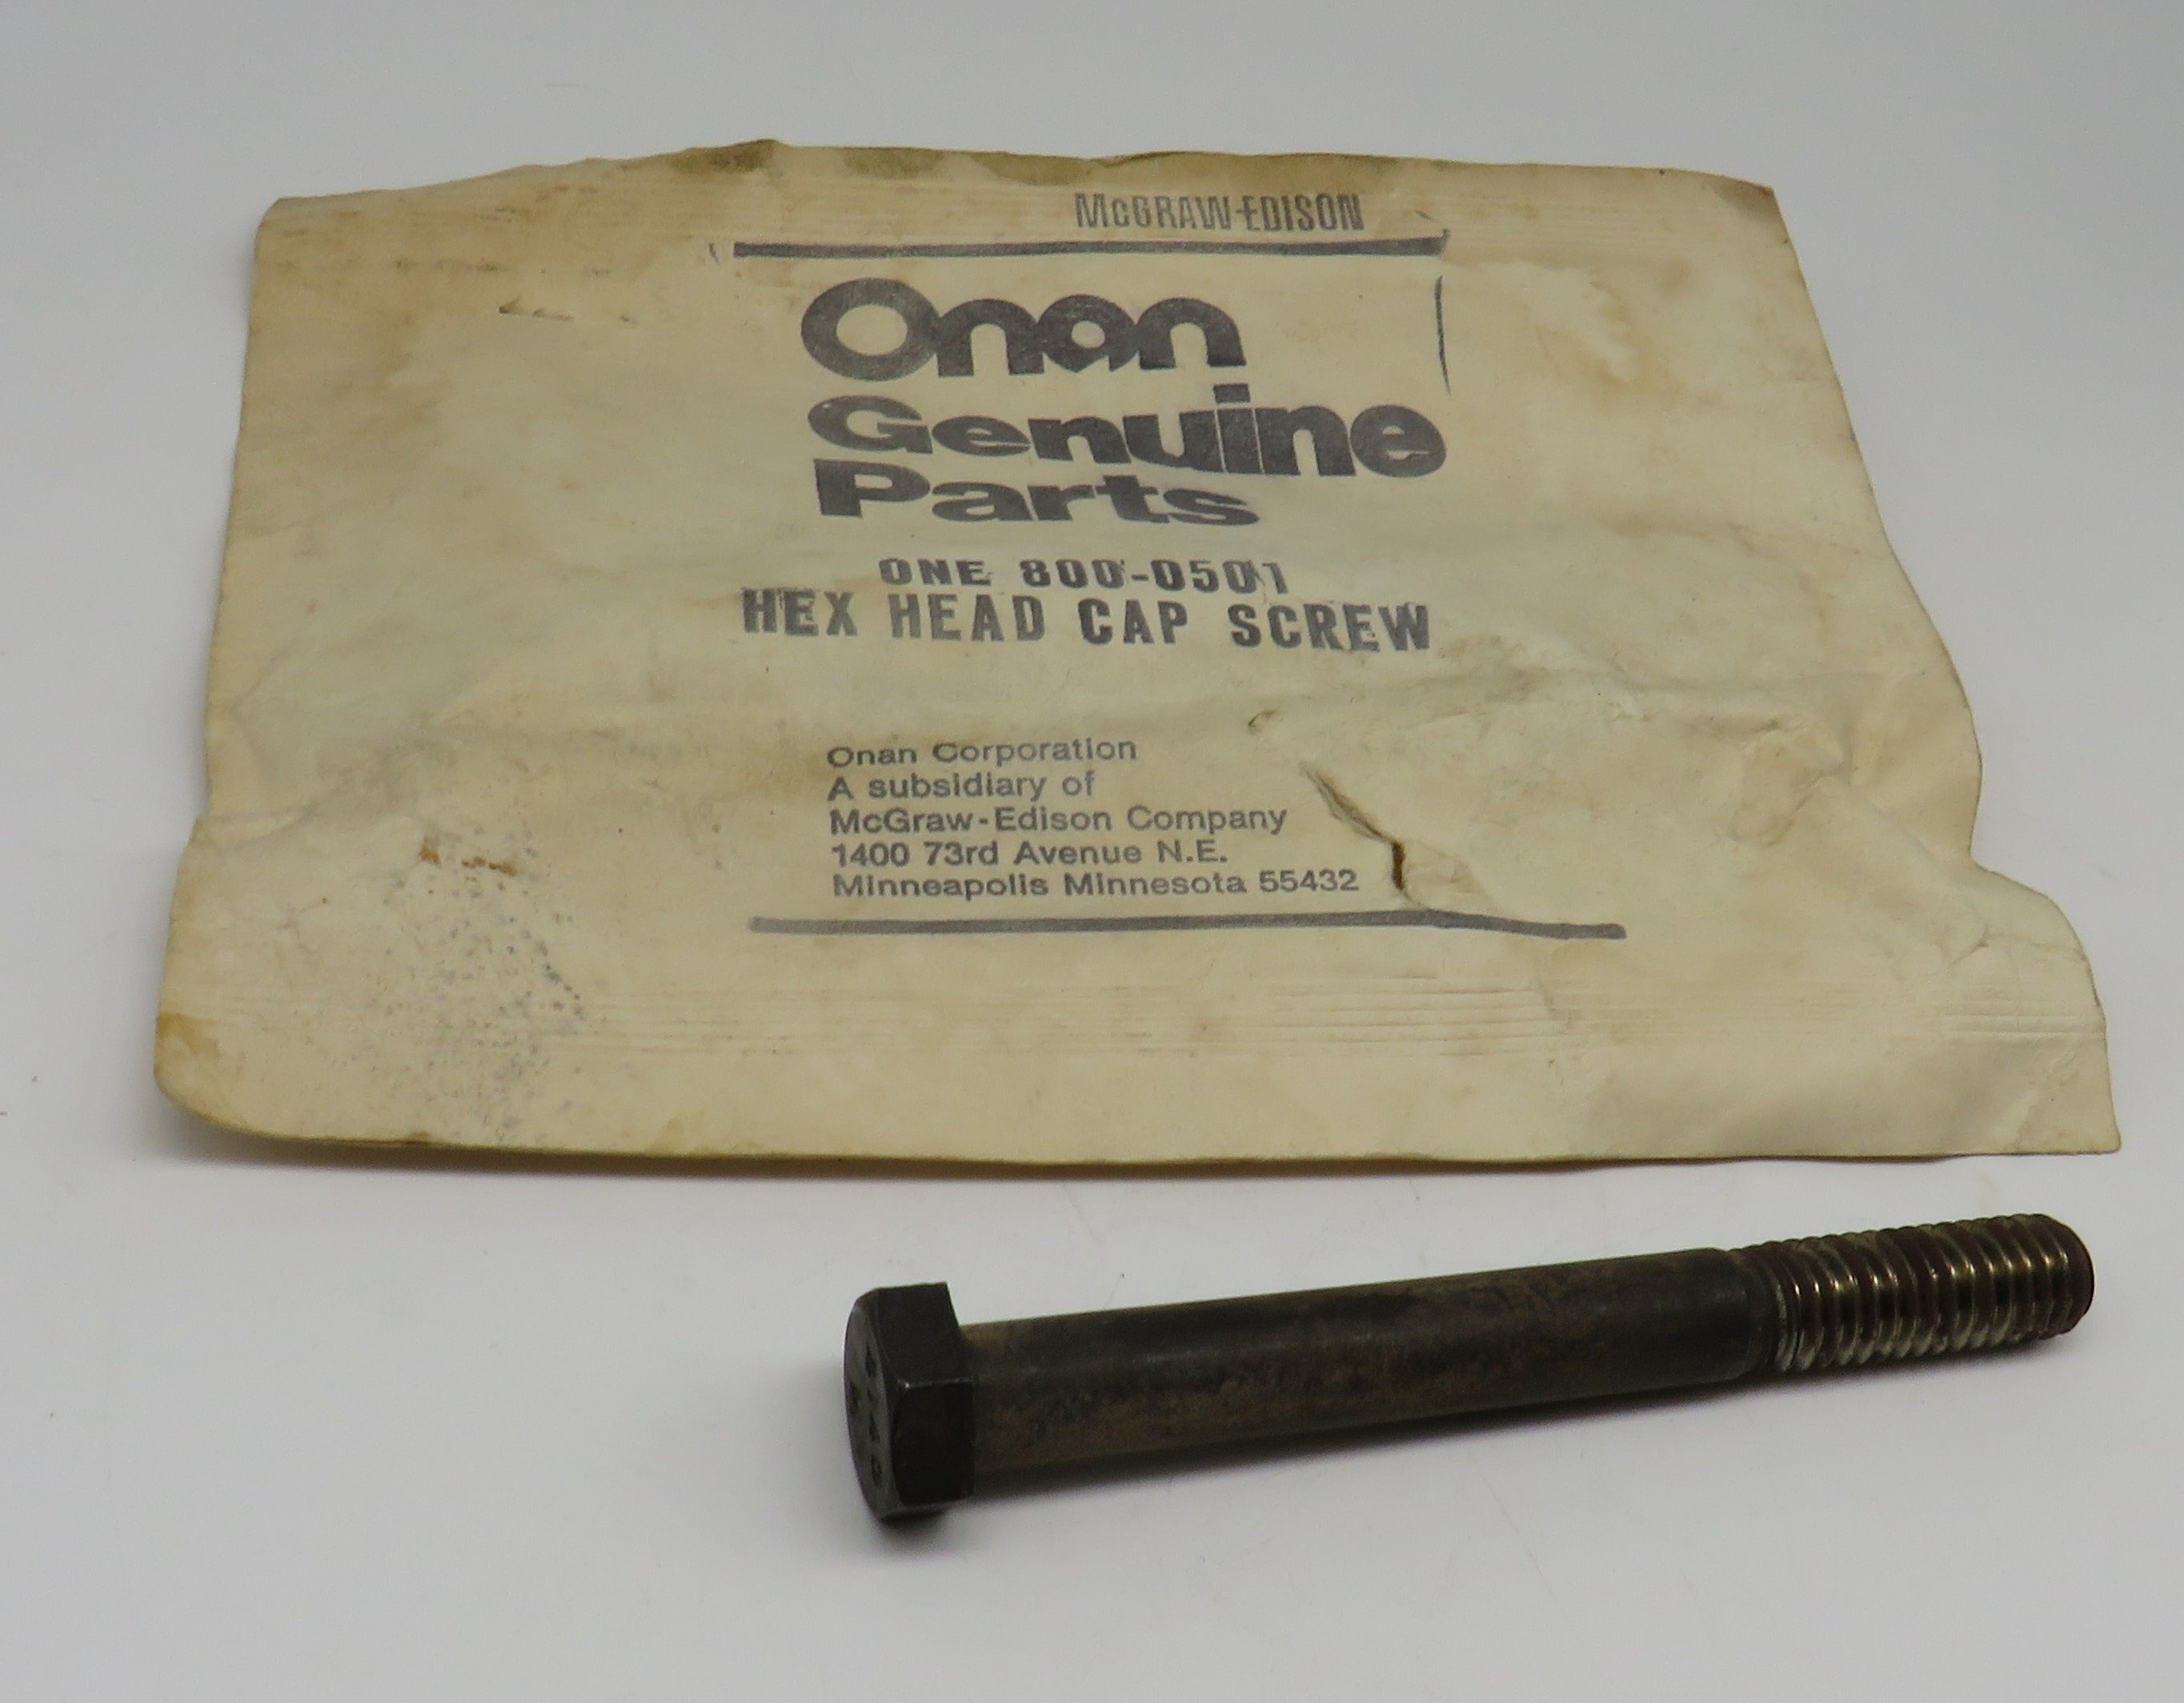 800-0501 Onan Screw-Hex Head Cap OBSOLETE